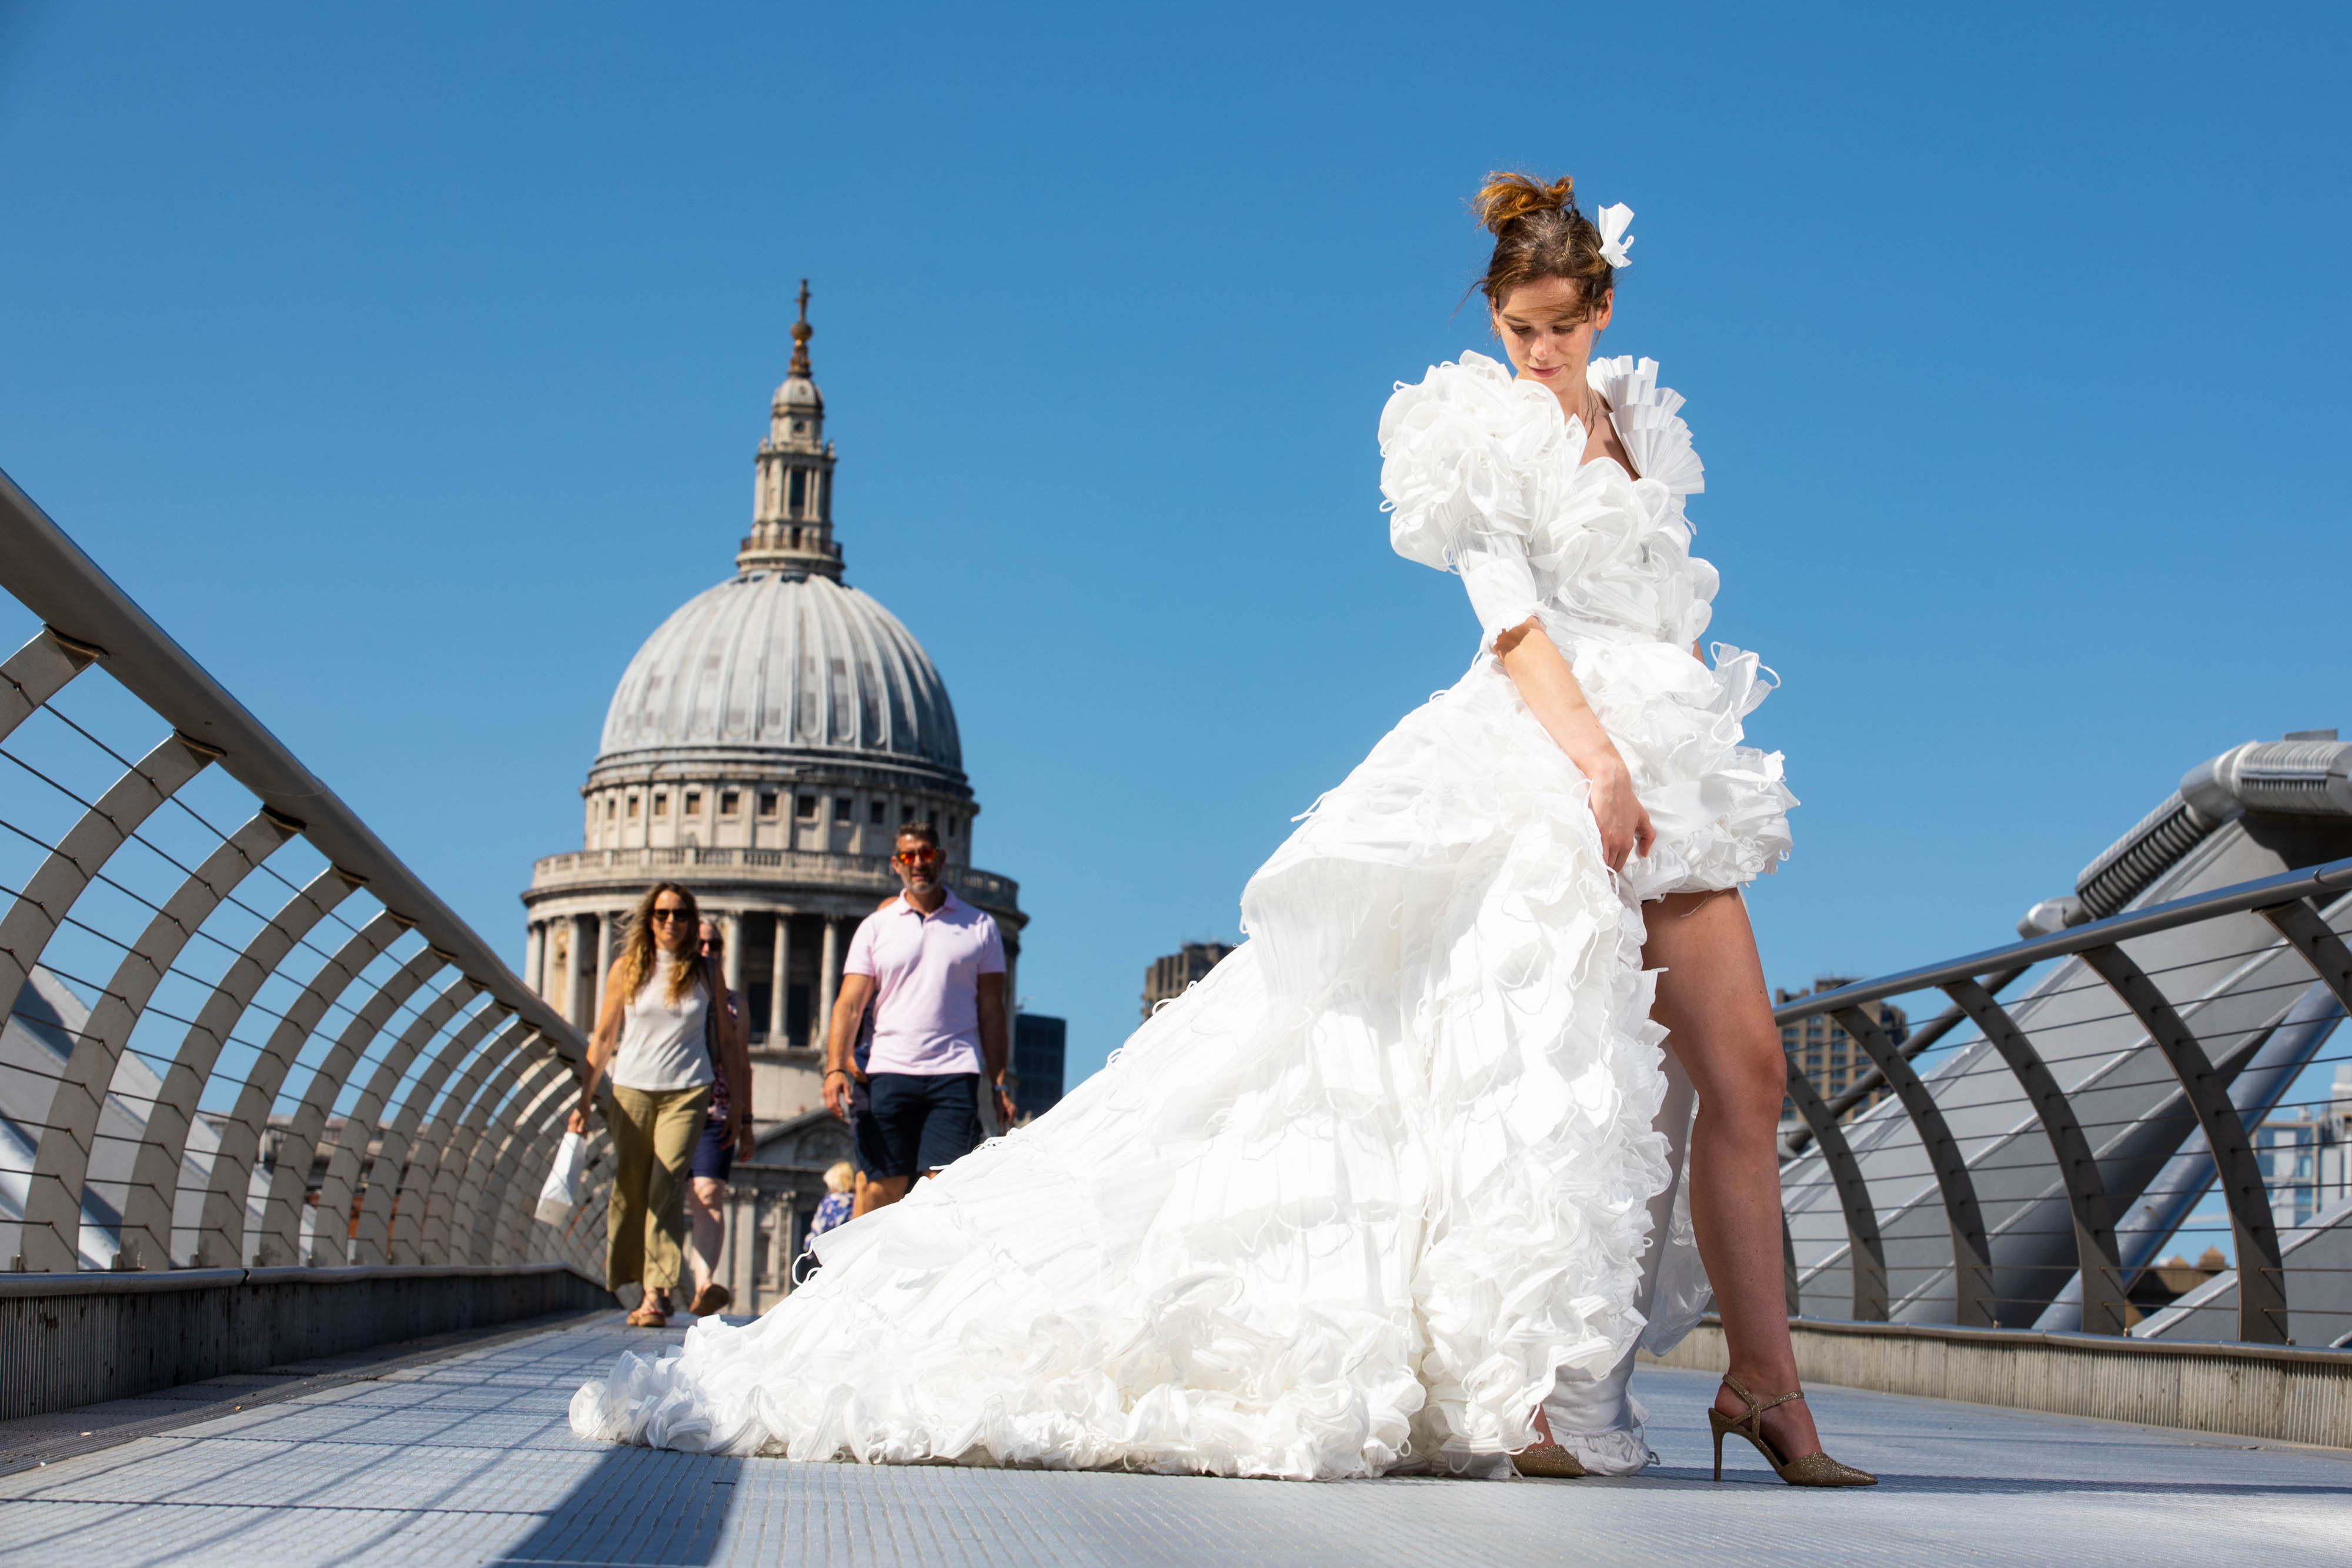 <p>EDITORIAL USE ONLY Jemima Hambro models, on the Millennium Bridge in London, a wedding dress designed by Tom Silverwood and made from over 1,500 unwanted face masks, for wedding planning website, Hitched, to celebrate all restrictions on weddings lifting in England from Monday. Issue date: Monday July 19, 2021.</p>